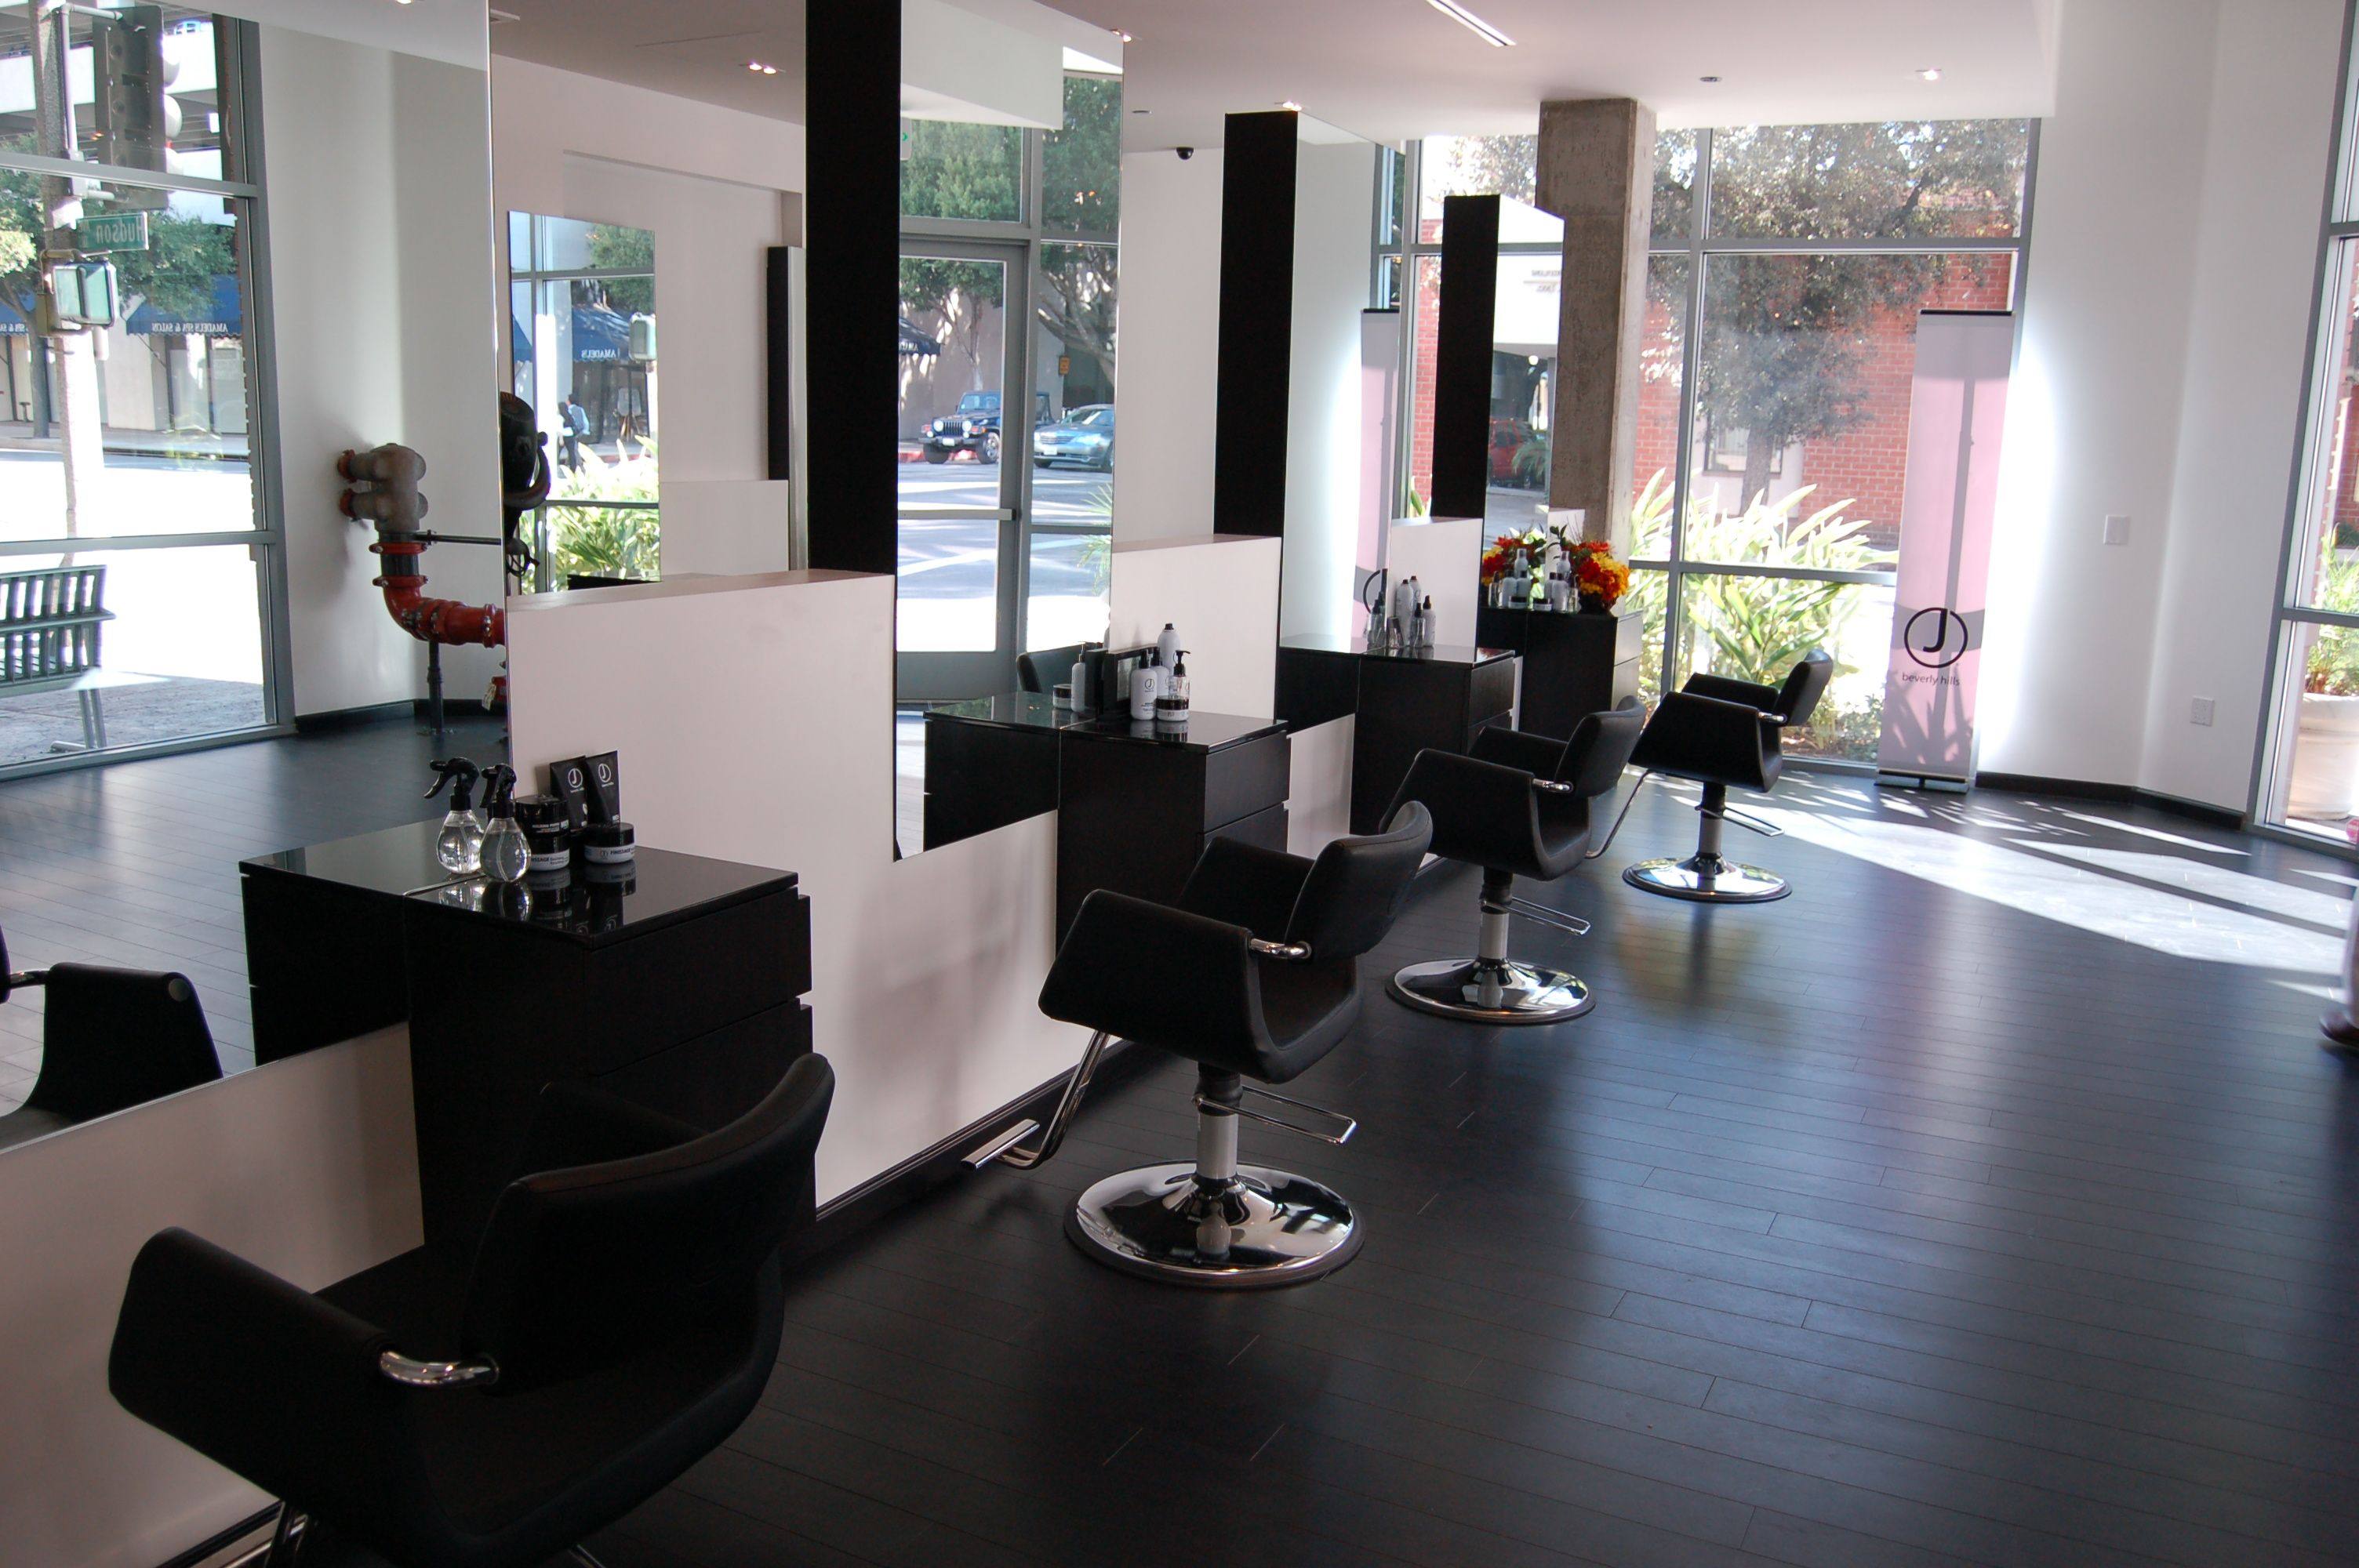 My Sister Is About To Open Up Her New Hair Salon And I Wish Her - The look hair salon